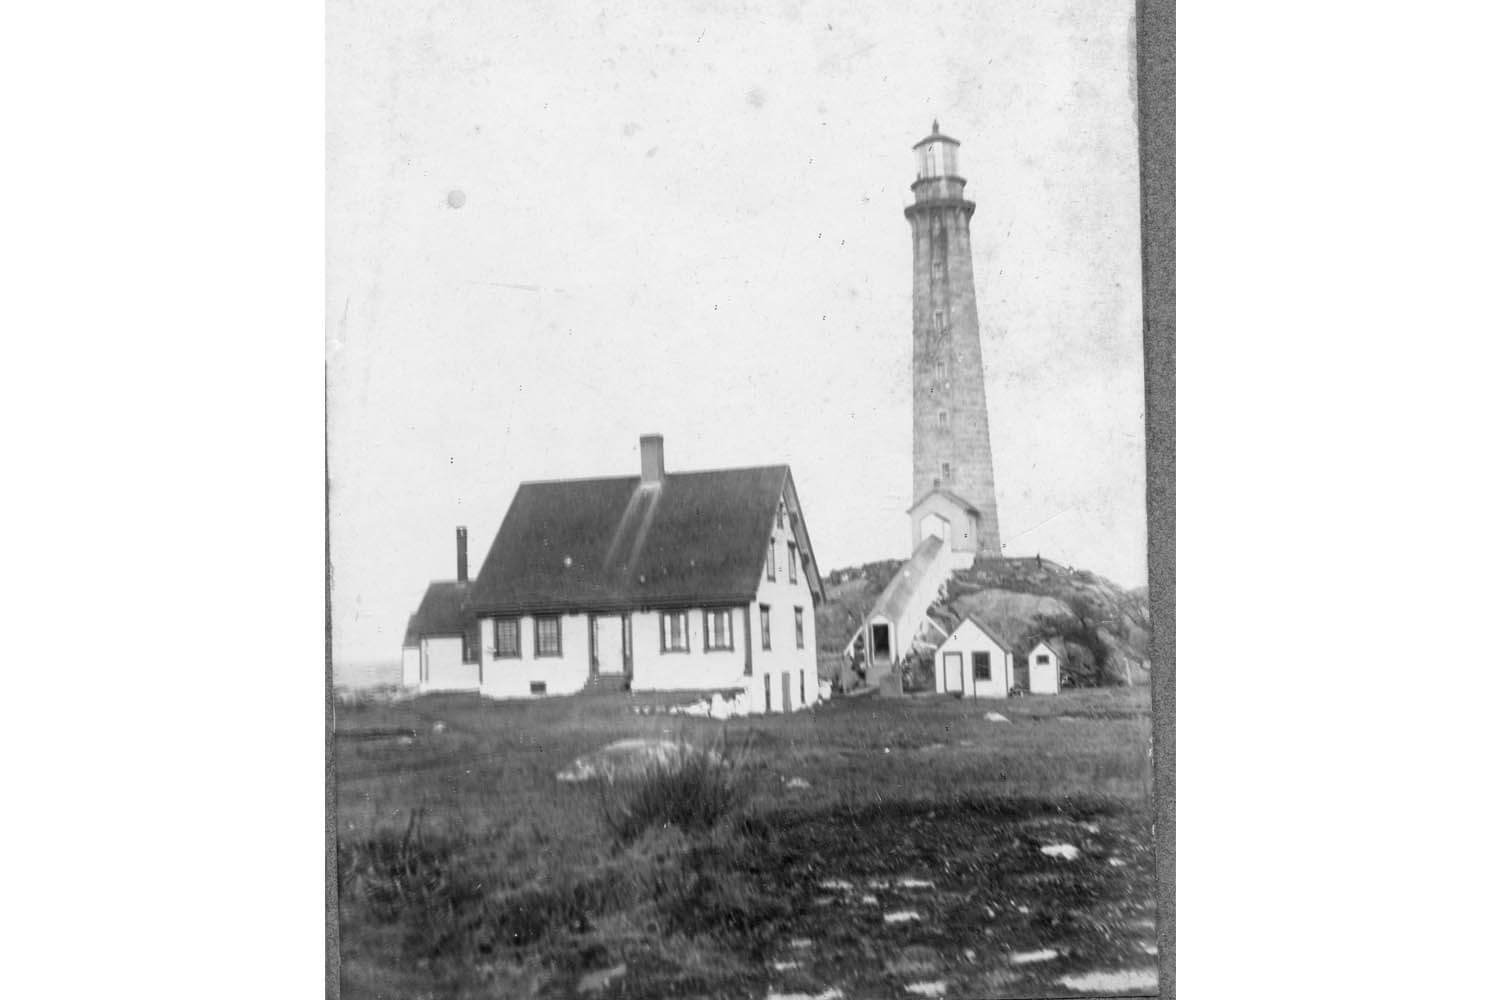 North tower with covered walkway c.1910.